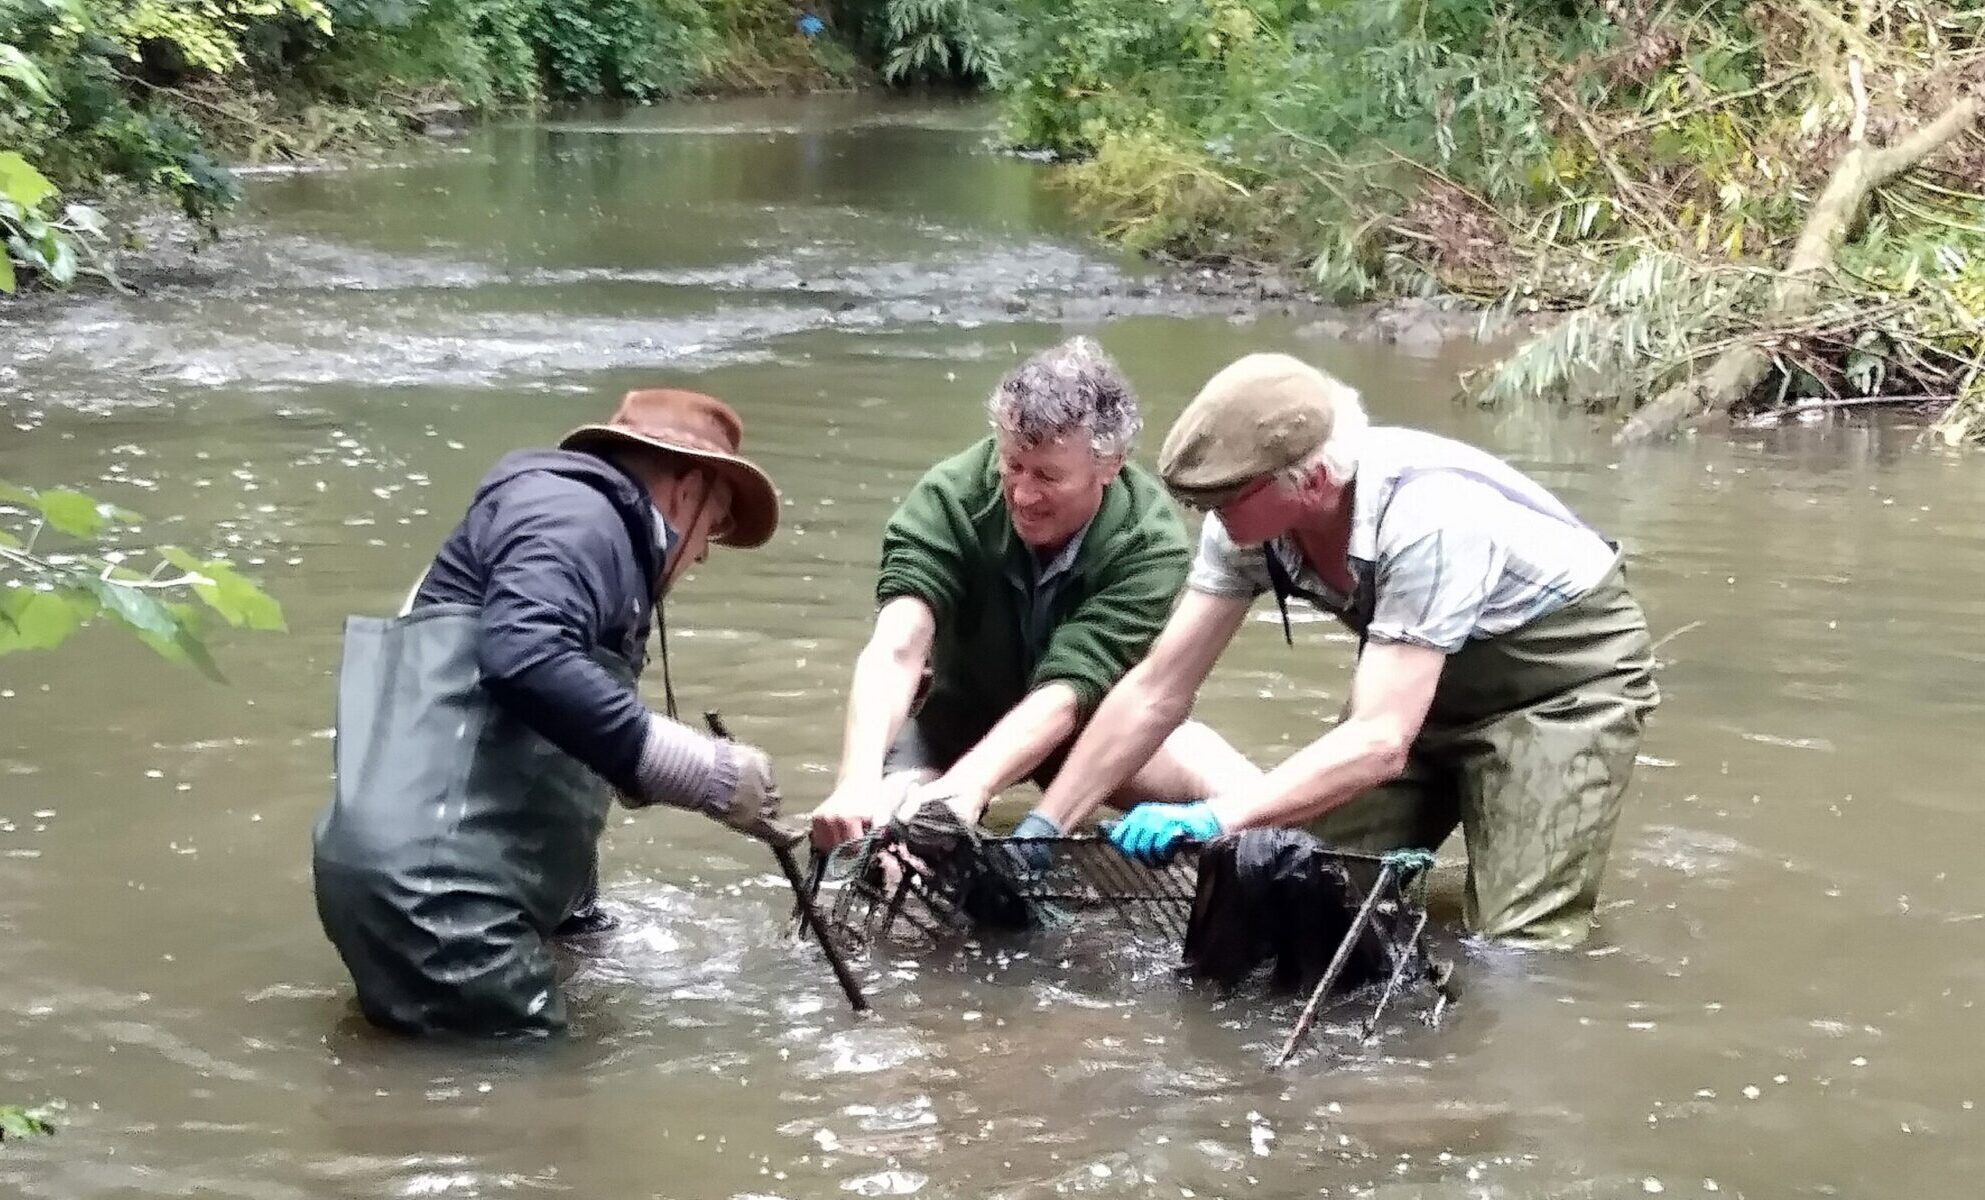 A photo of three men pulling debris from a river